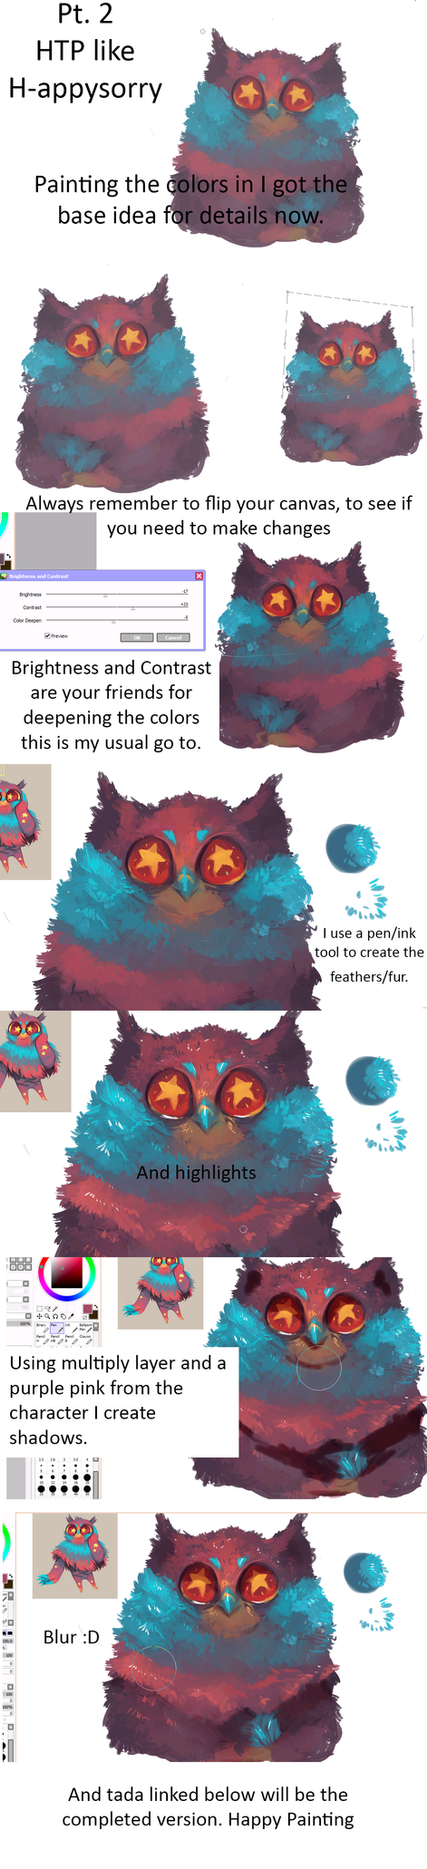 How to Paint like me Pt 2 by Happy-sorry